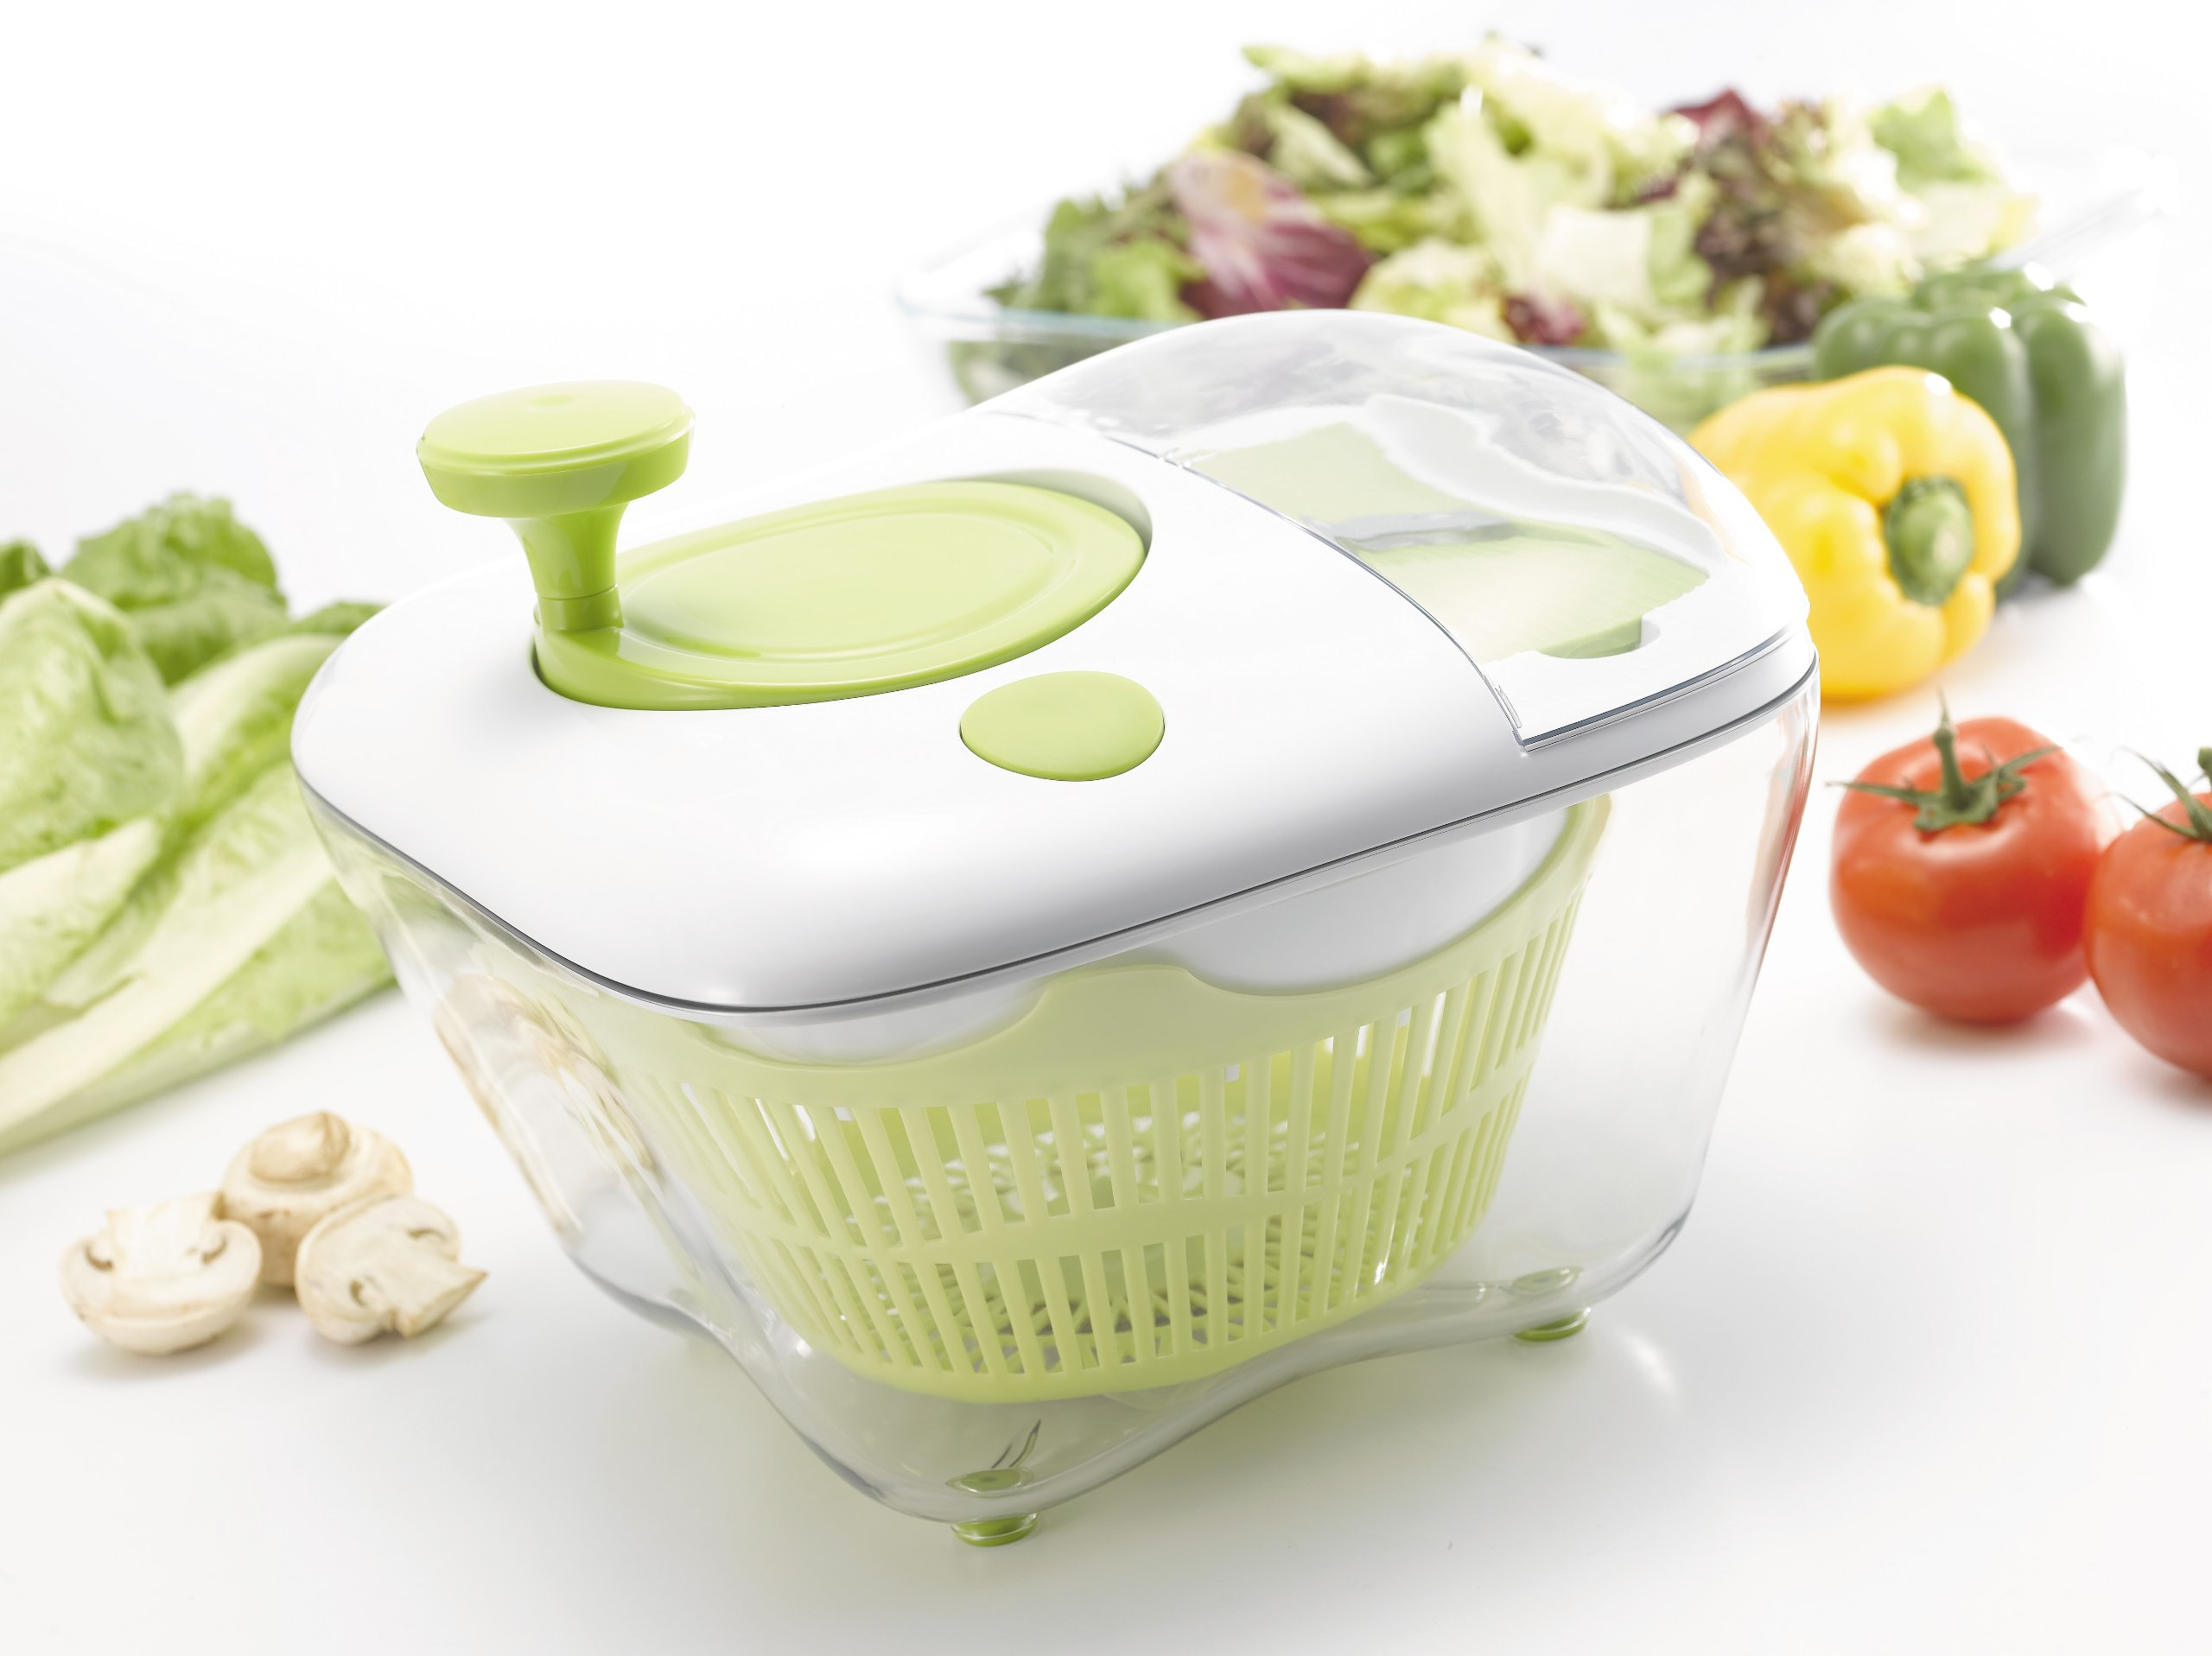 Chef's Star Multi-Function All In One Salad Spinner with Grater by Chef's Star